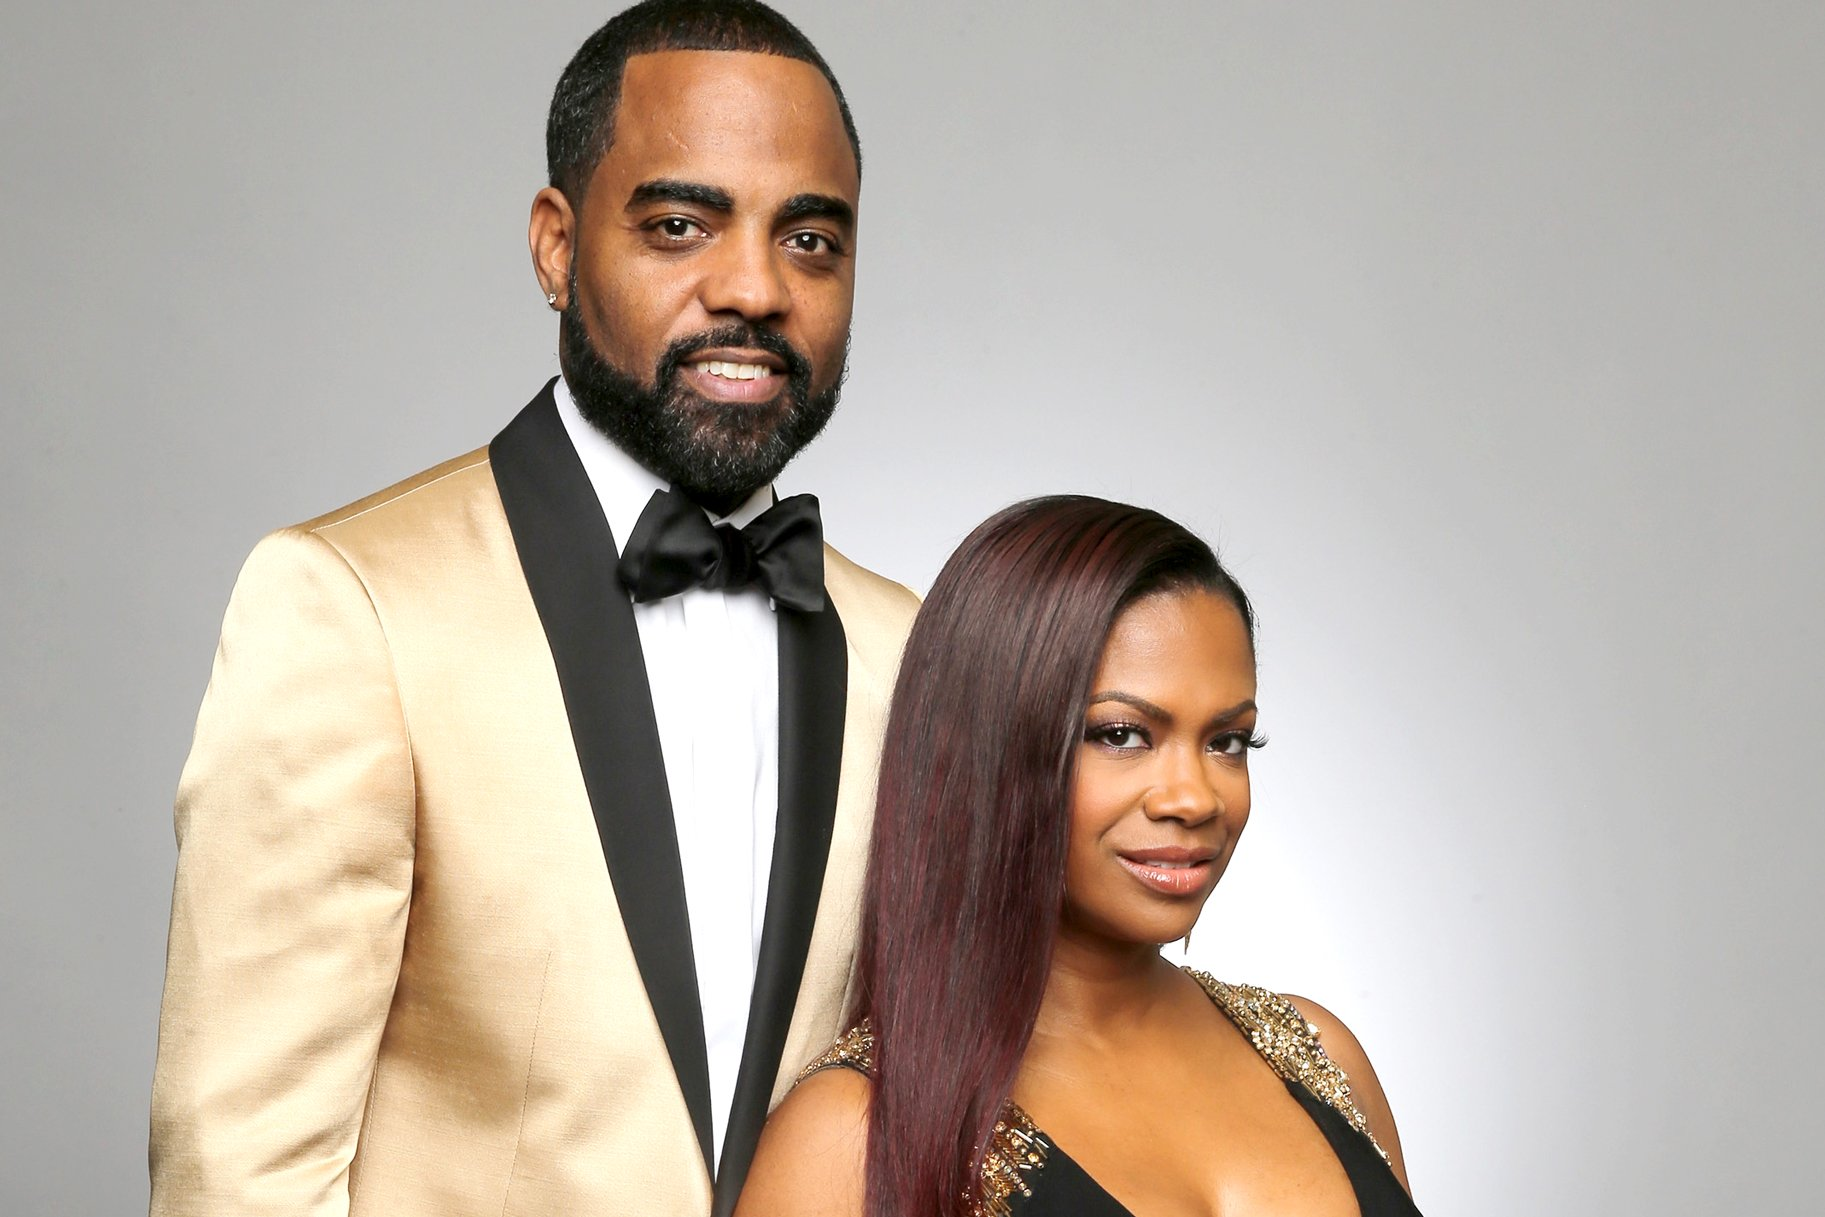 """kandi-burruss-updates-fans-on-where-she-and-todd-tucker-stand-today-after-marital-problems-in-season-12-of-rhoa"""